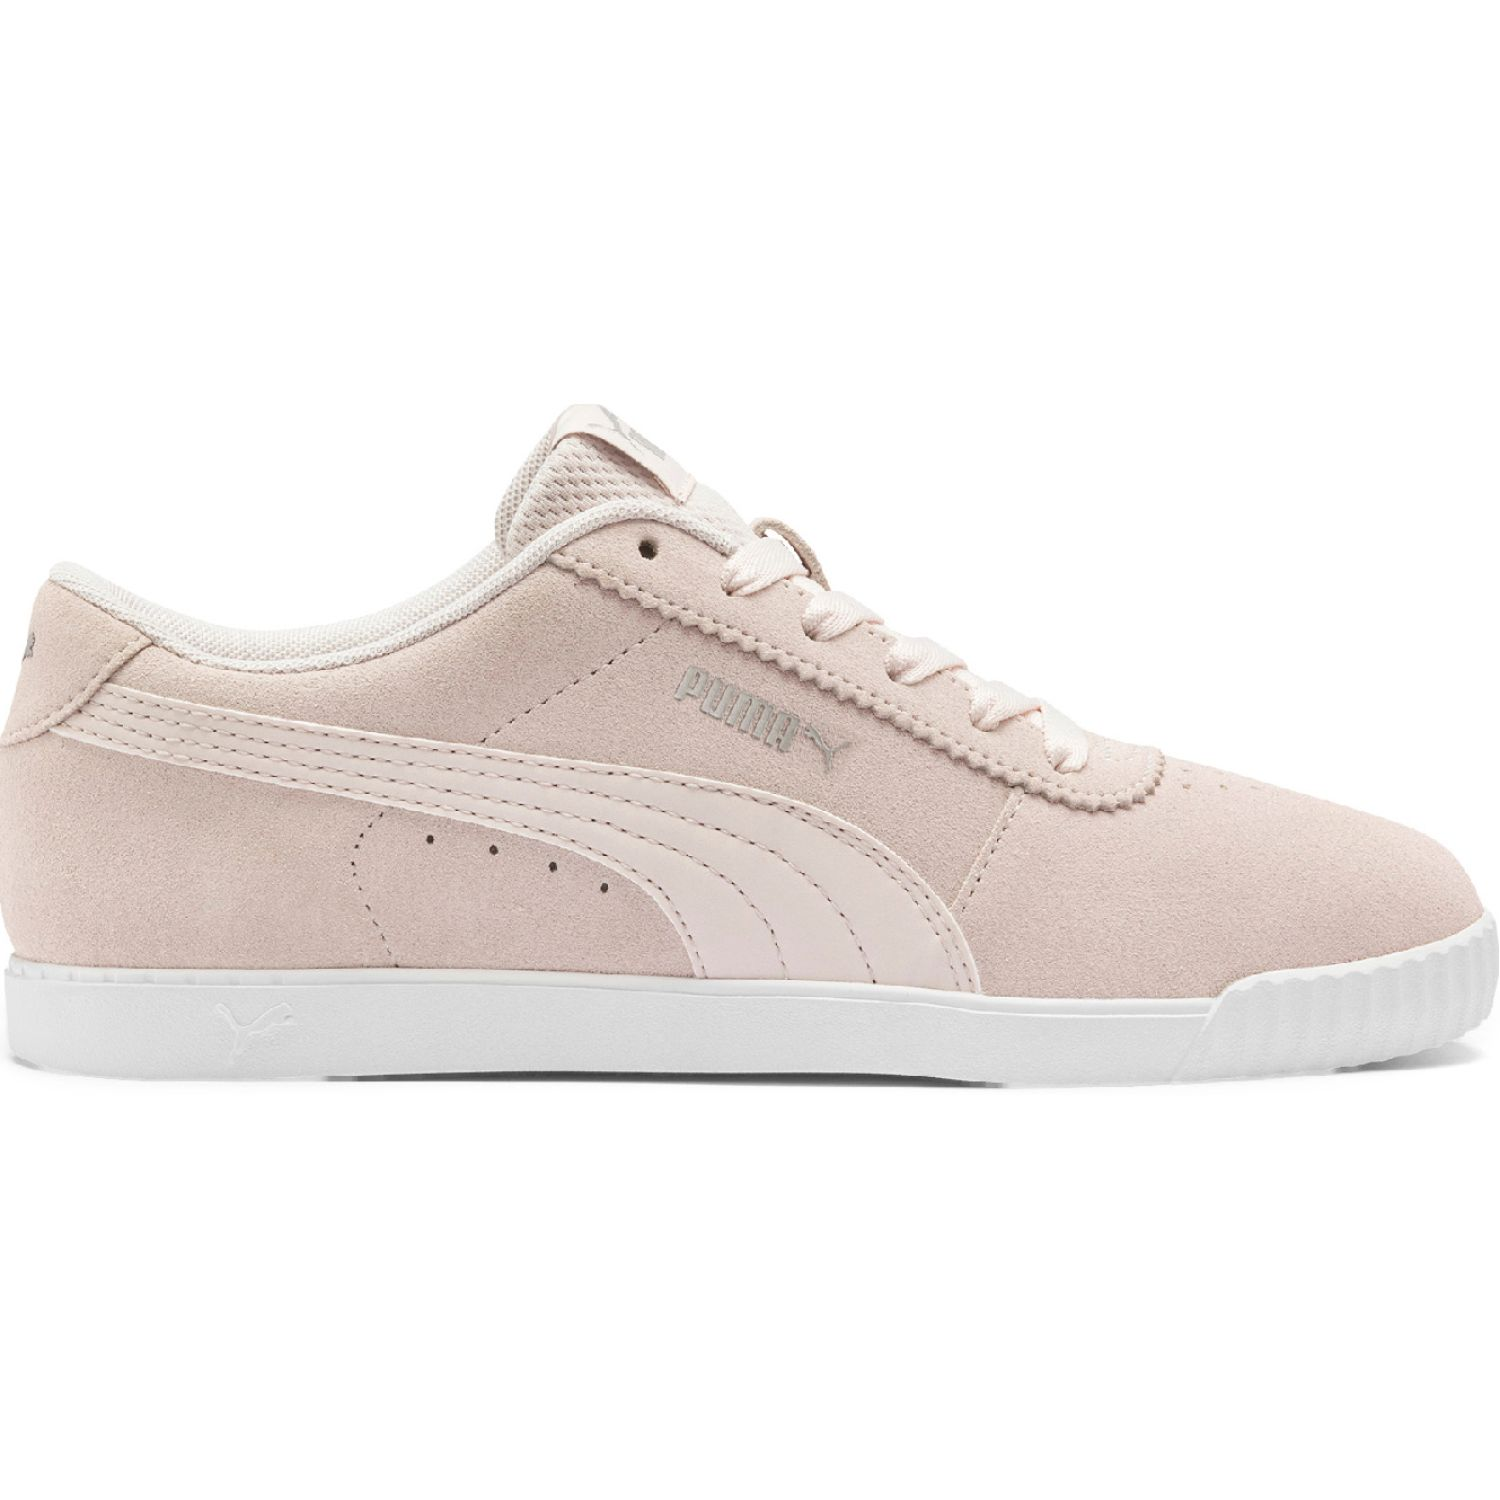 Puma carina slim sd Beige Walking